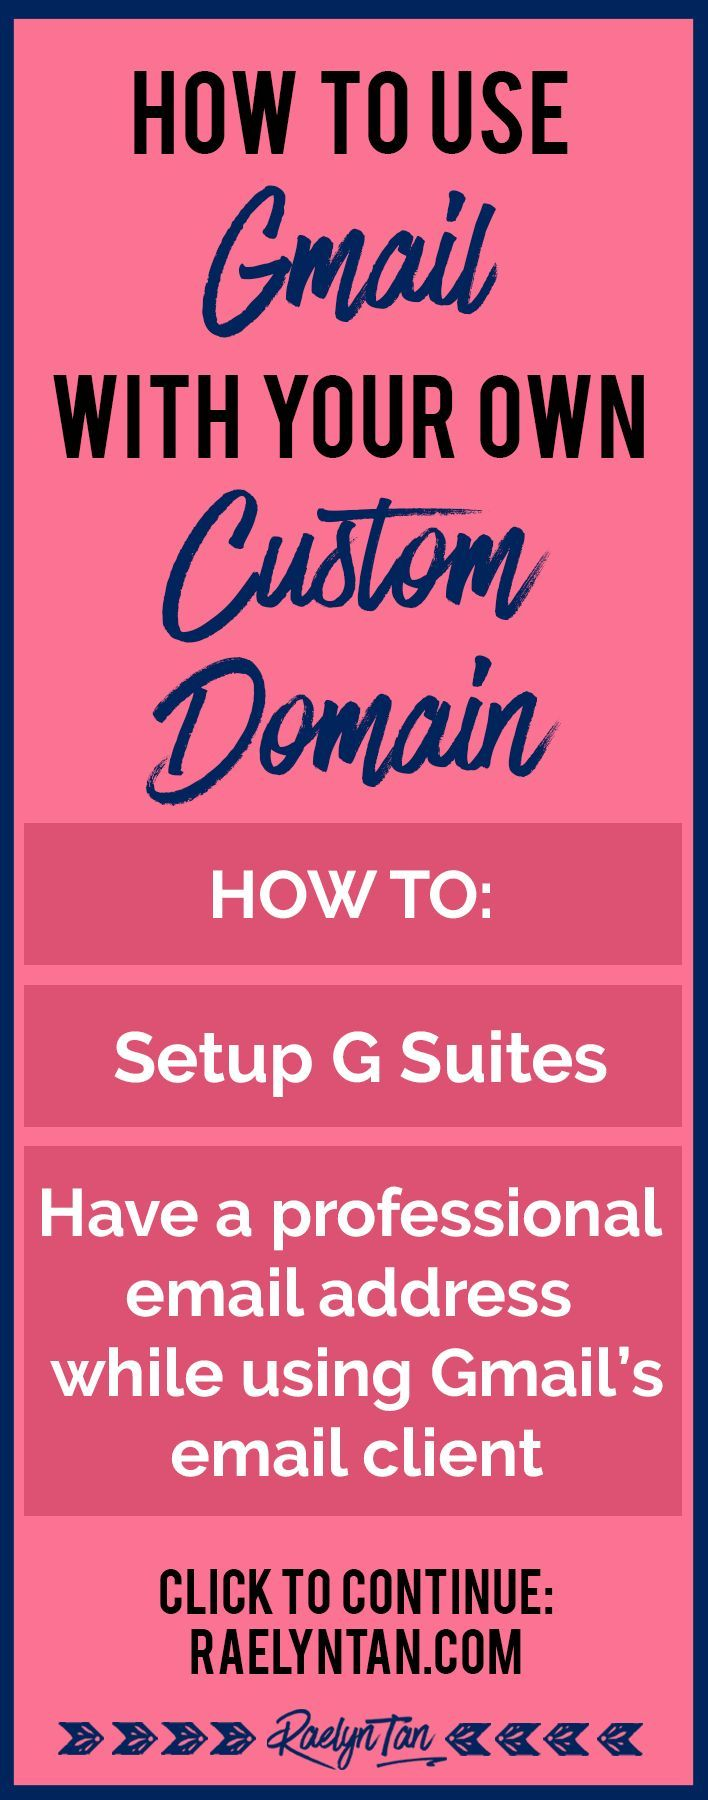 25 best ideas about your email on pinterest get email email list and email marketing. Black Bedroom Furniture Sets. Home Design Ideas